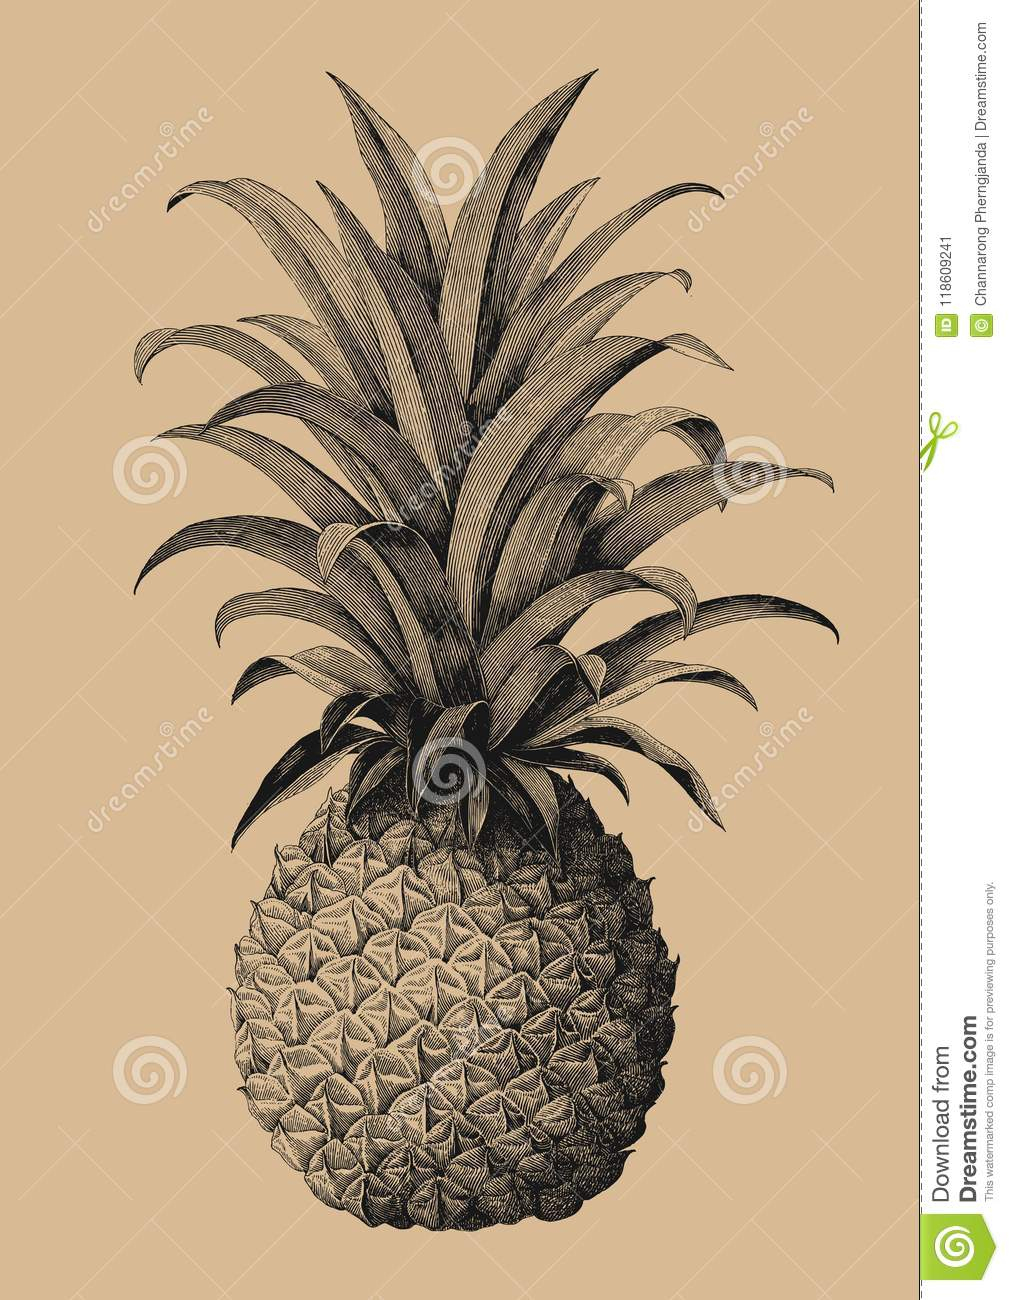 Pineapple Hand Drawing Vintage Engraving Style Stock Vector